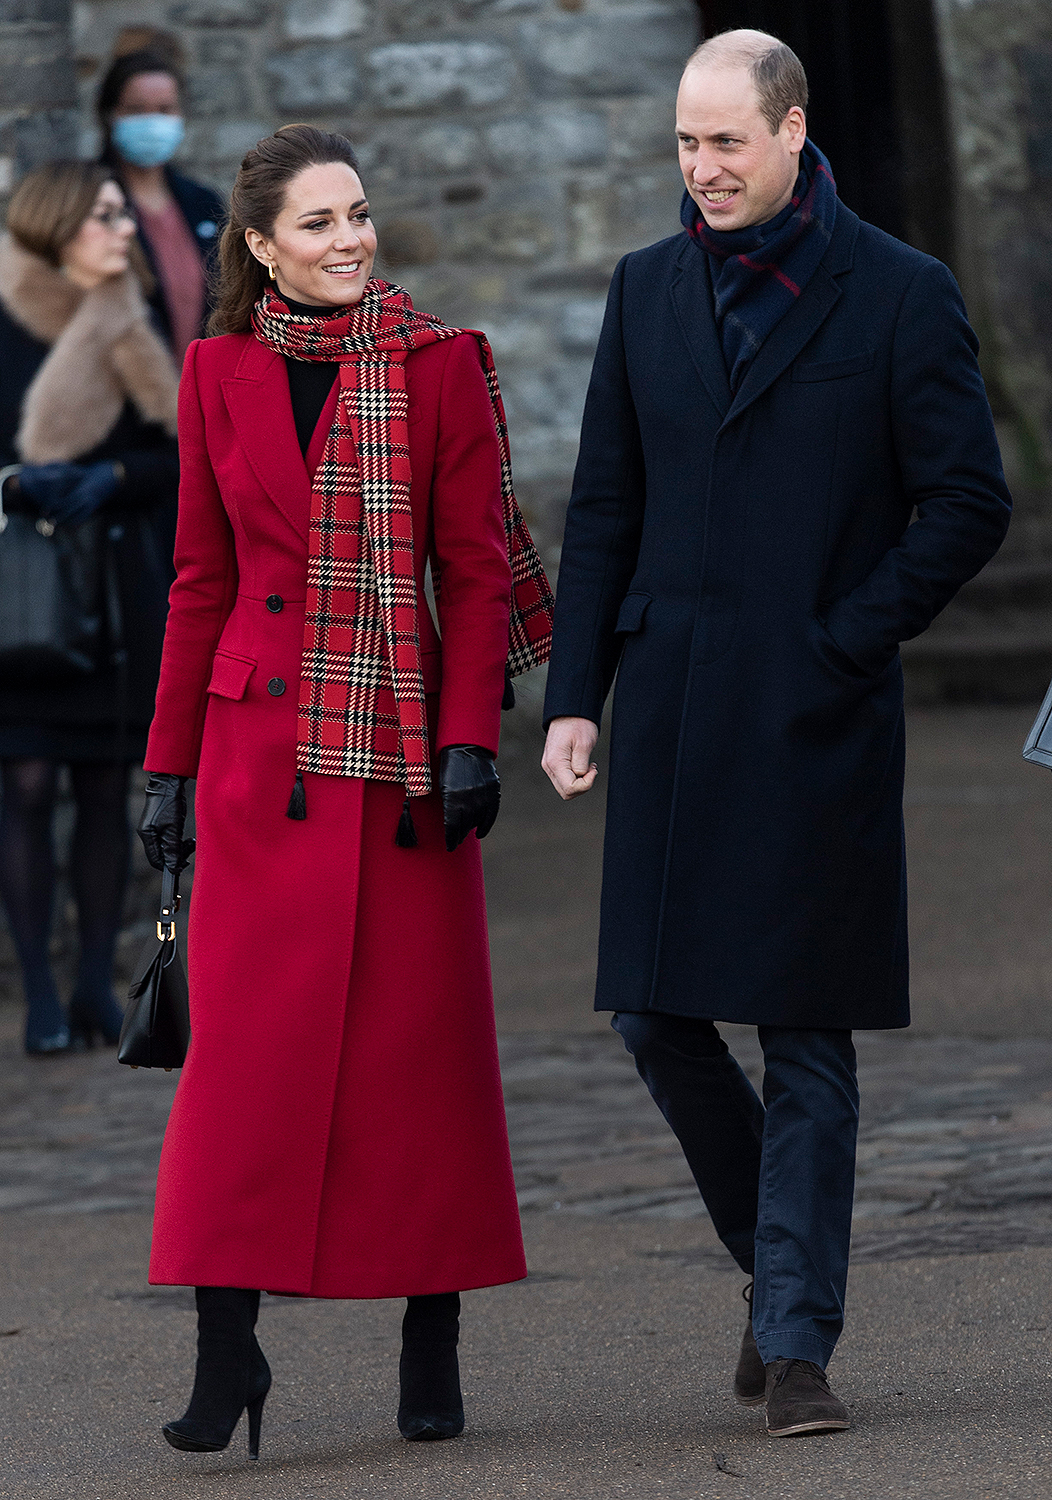 William and Kate at Windsor